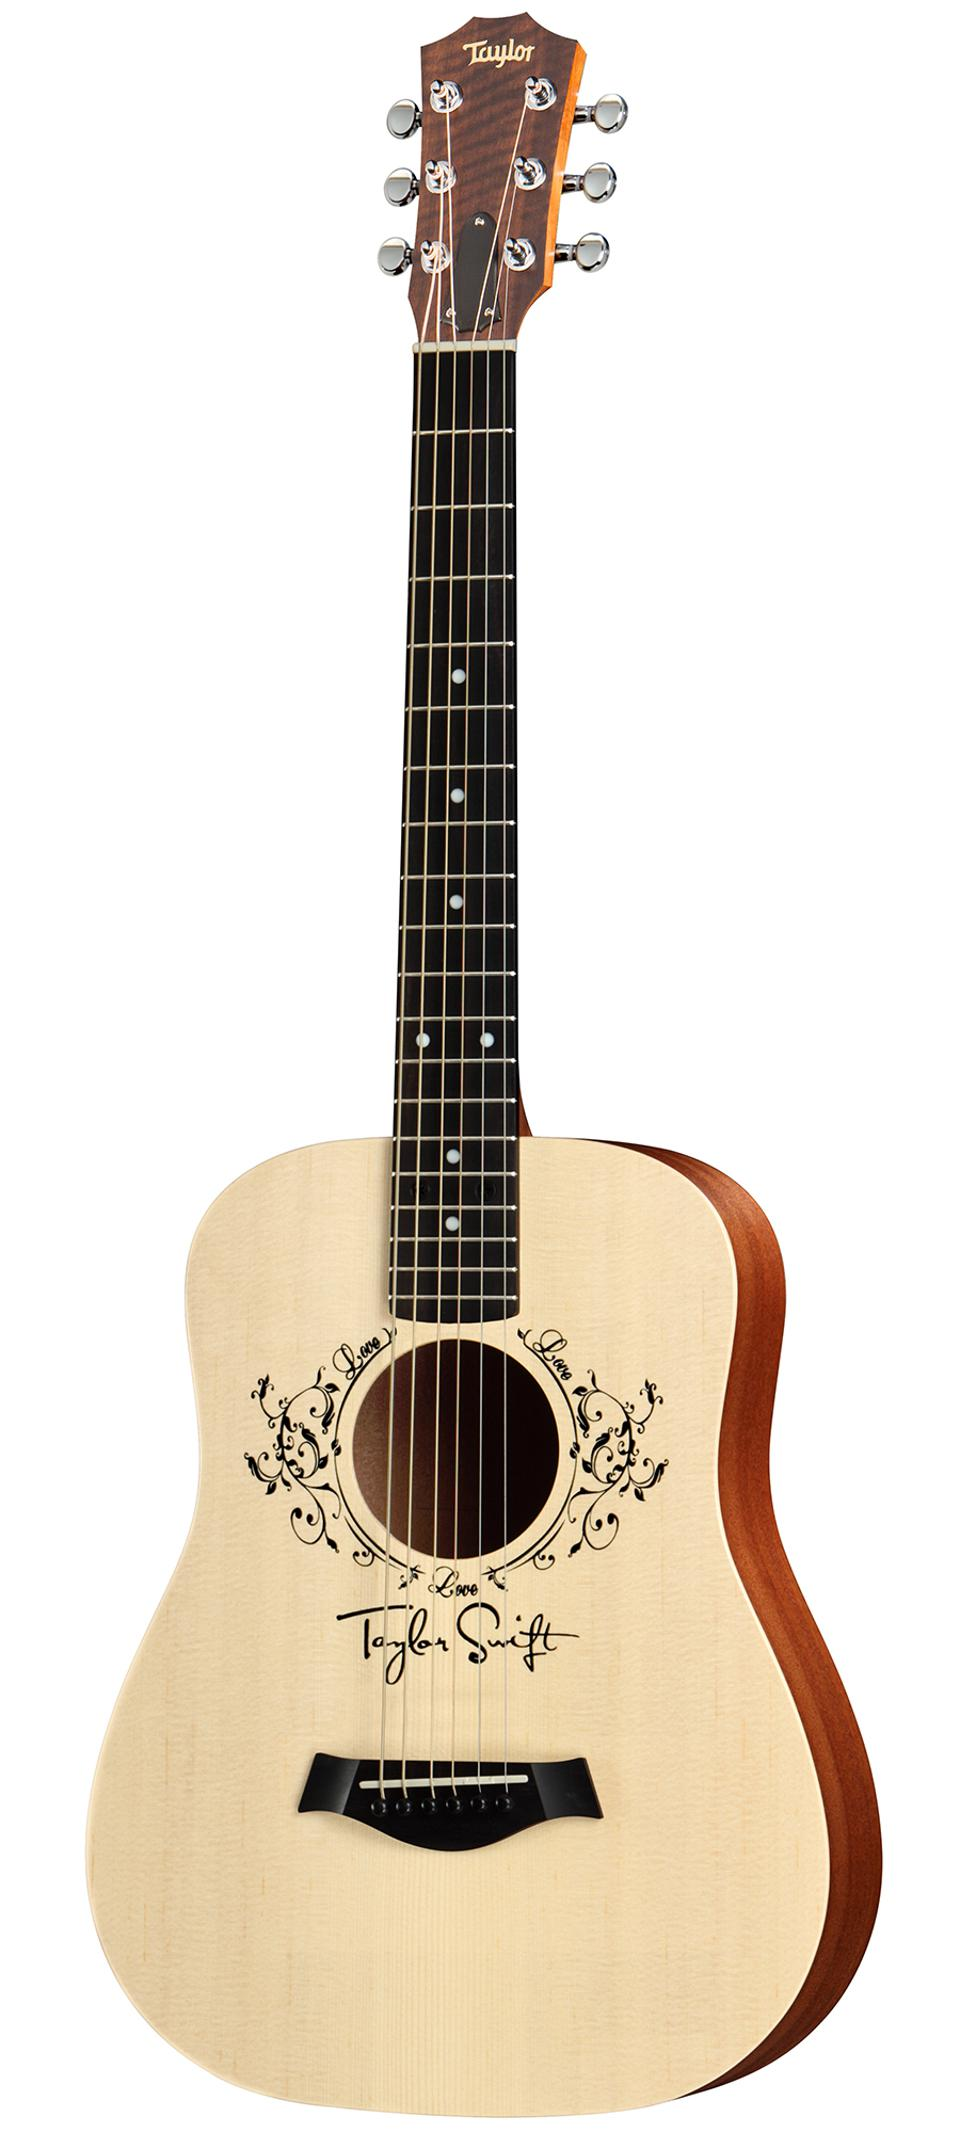 Taylor Swift's Taylor Guitar